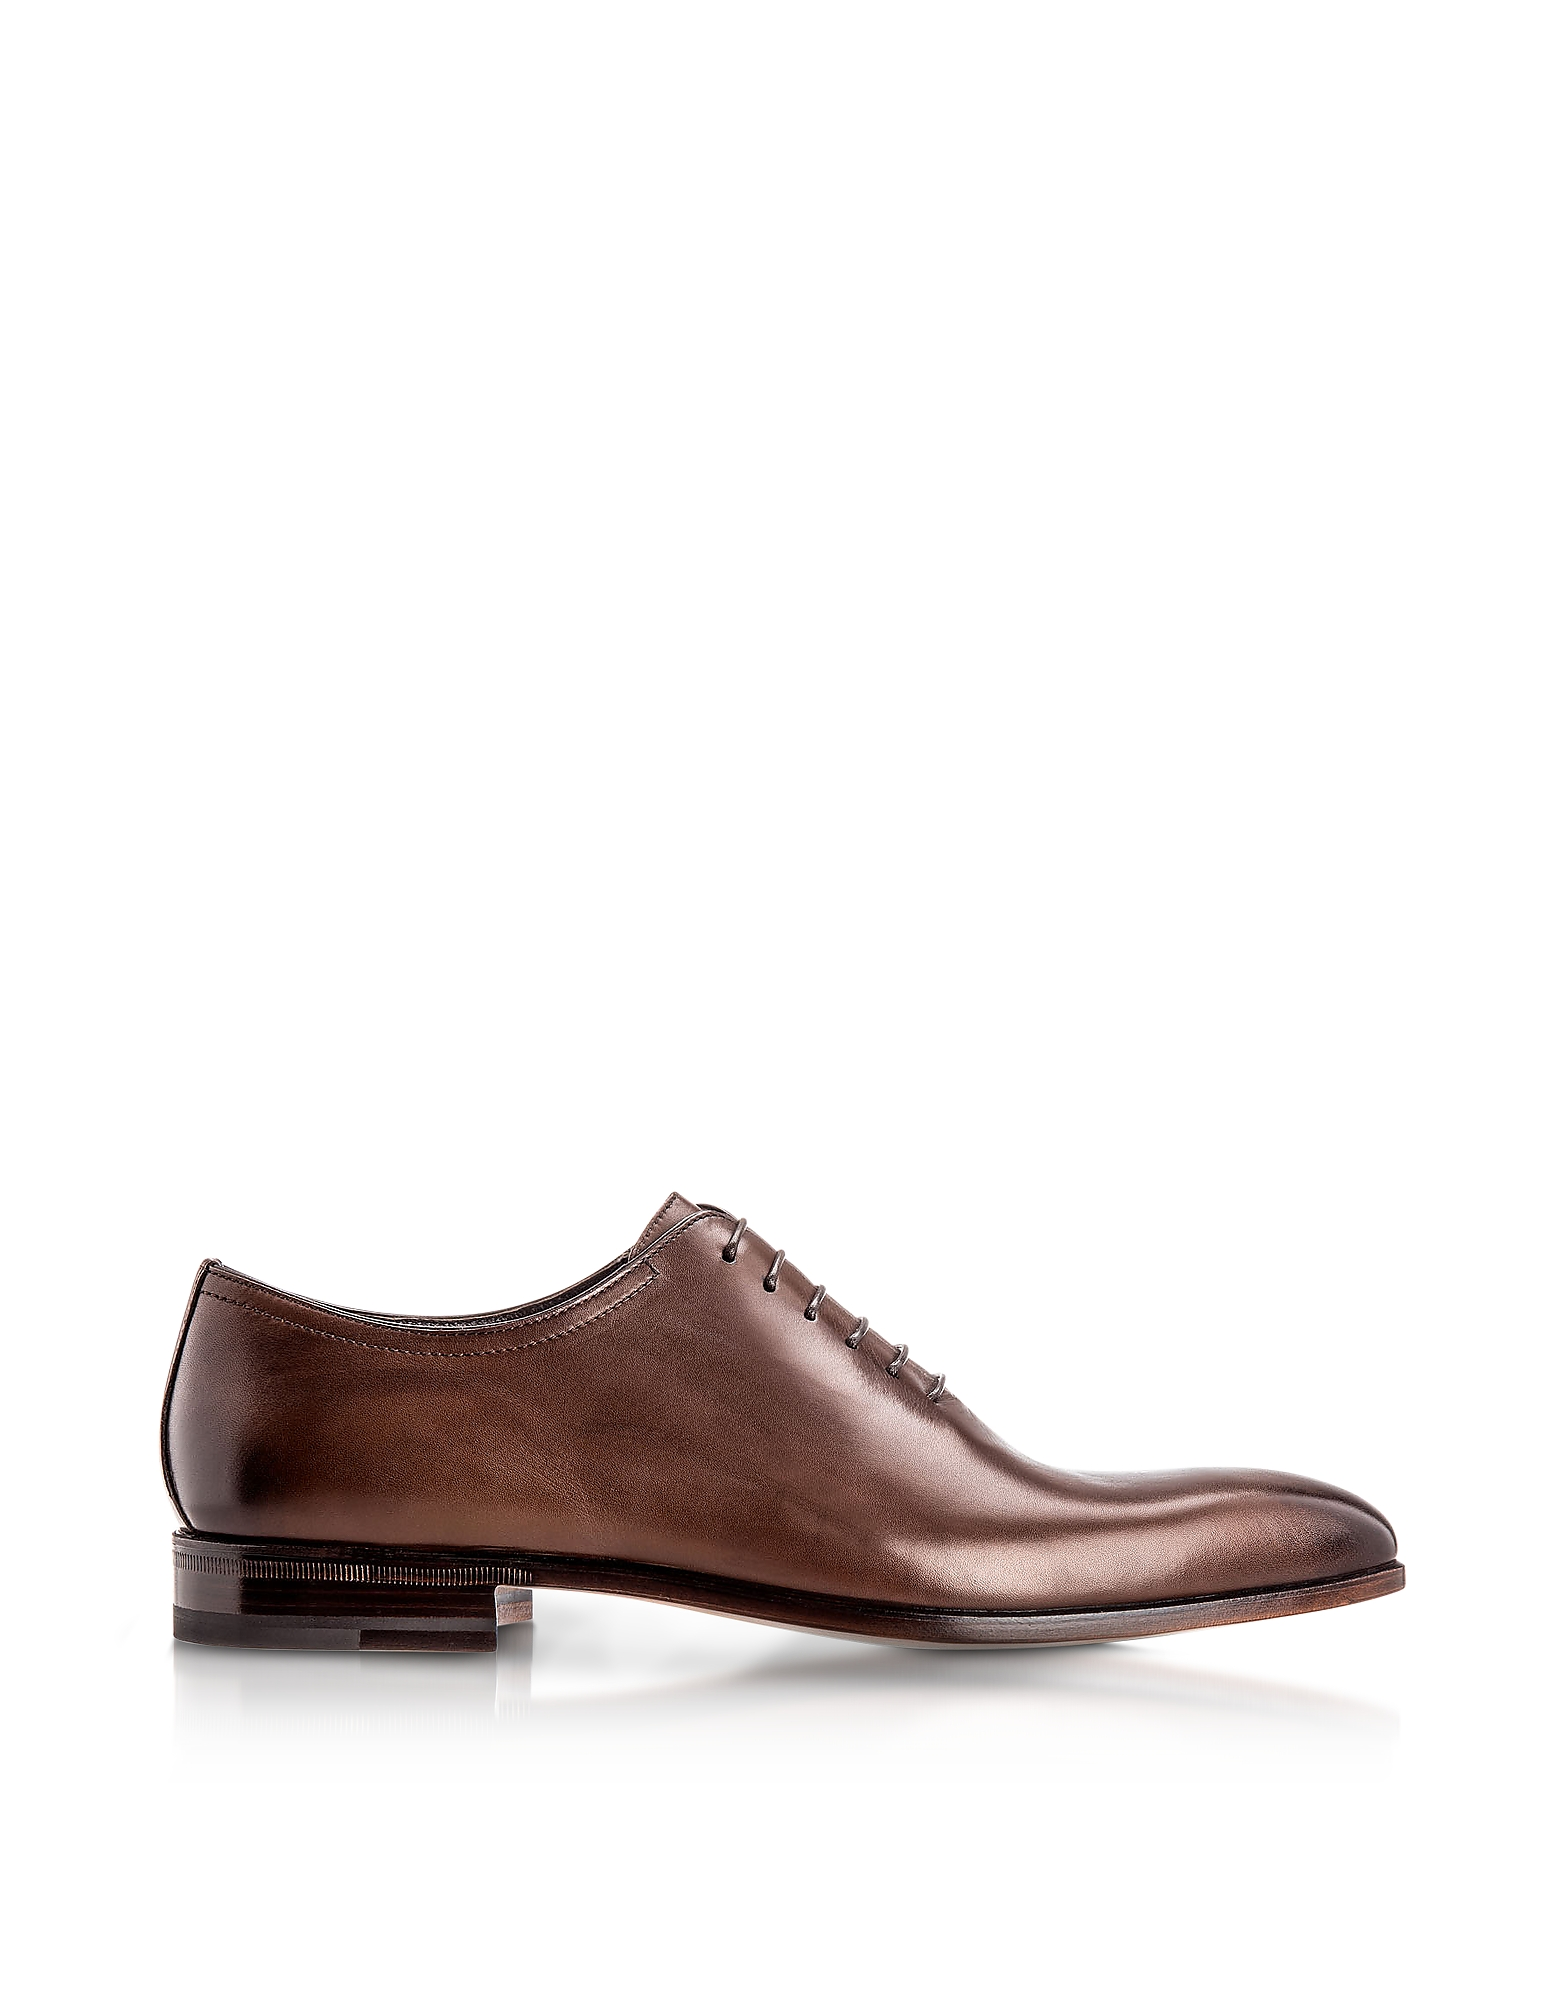 Moreschi Designer Shoes, Montreal Brown Antiqued Calfskin Oxford Shoes